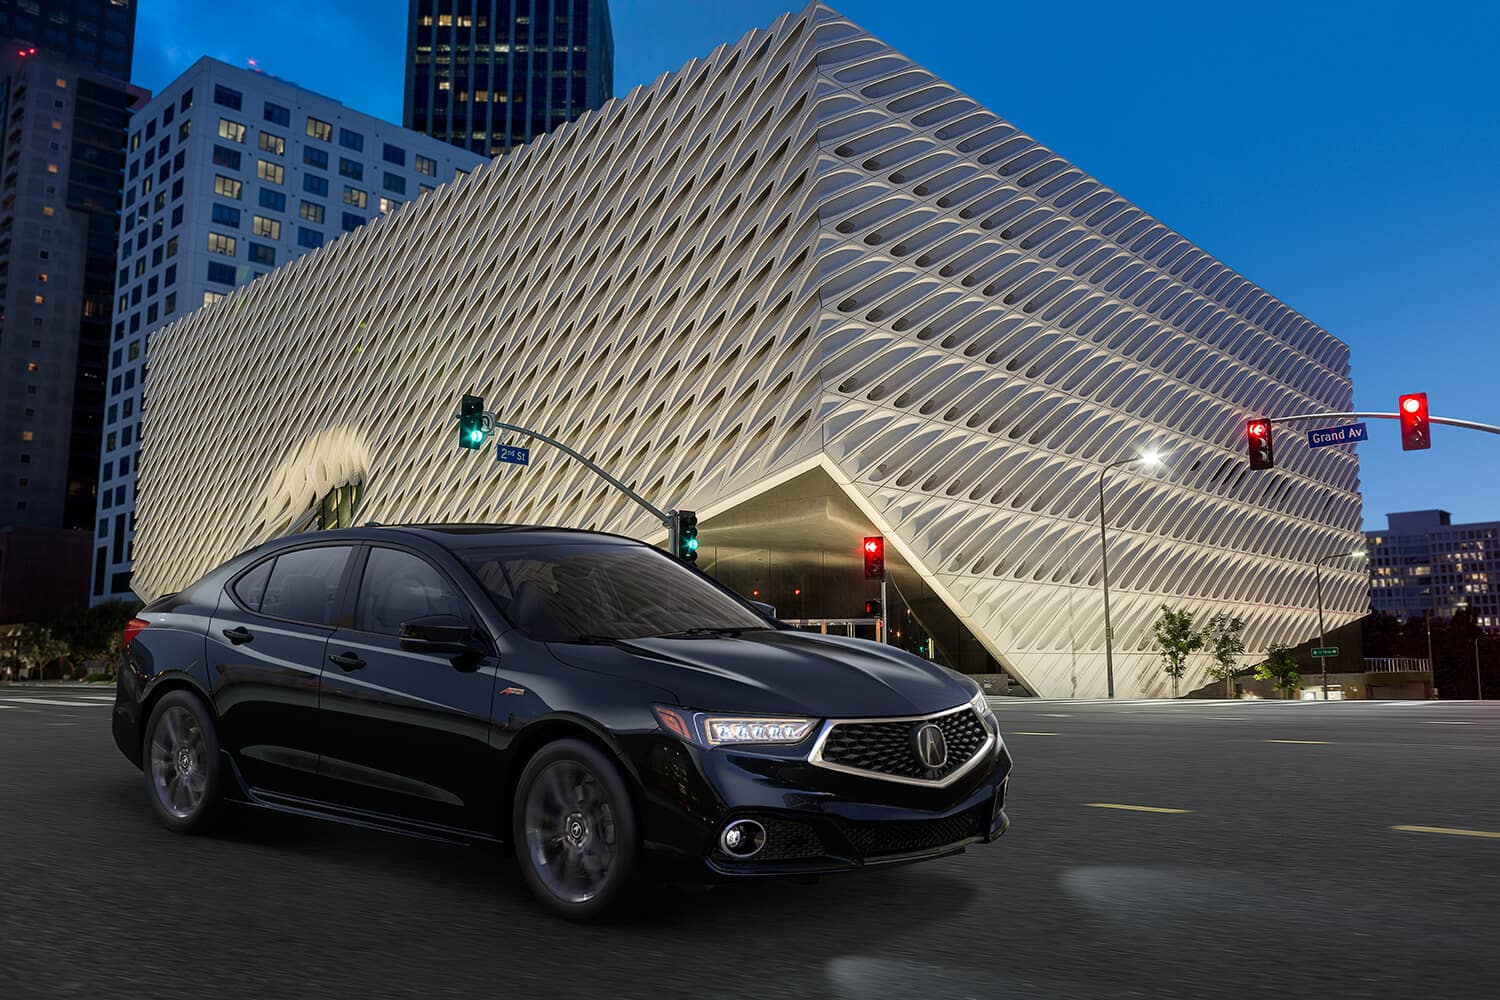 2019 Acura TLX Exterior City Night Passenger Side